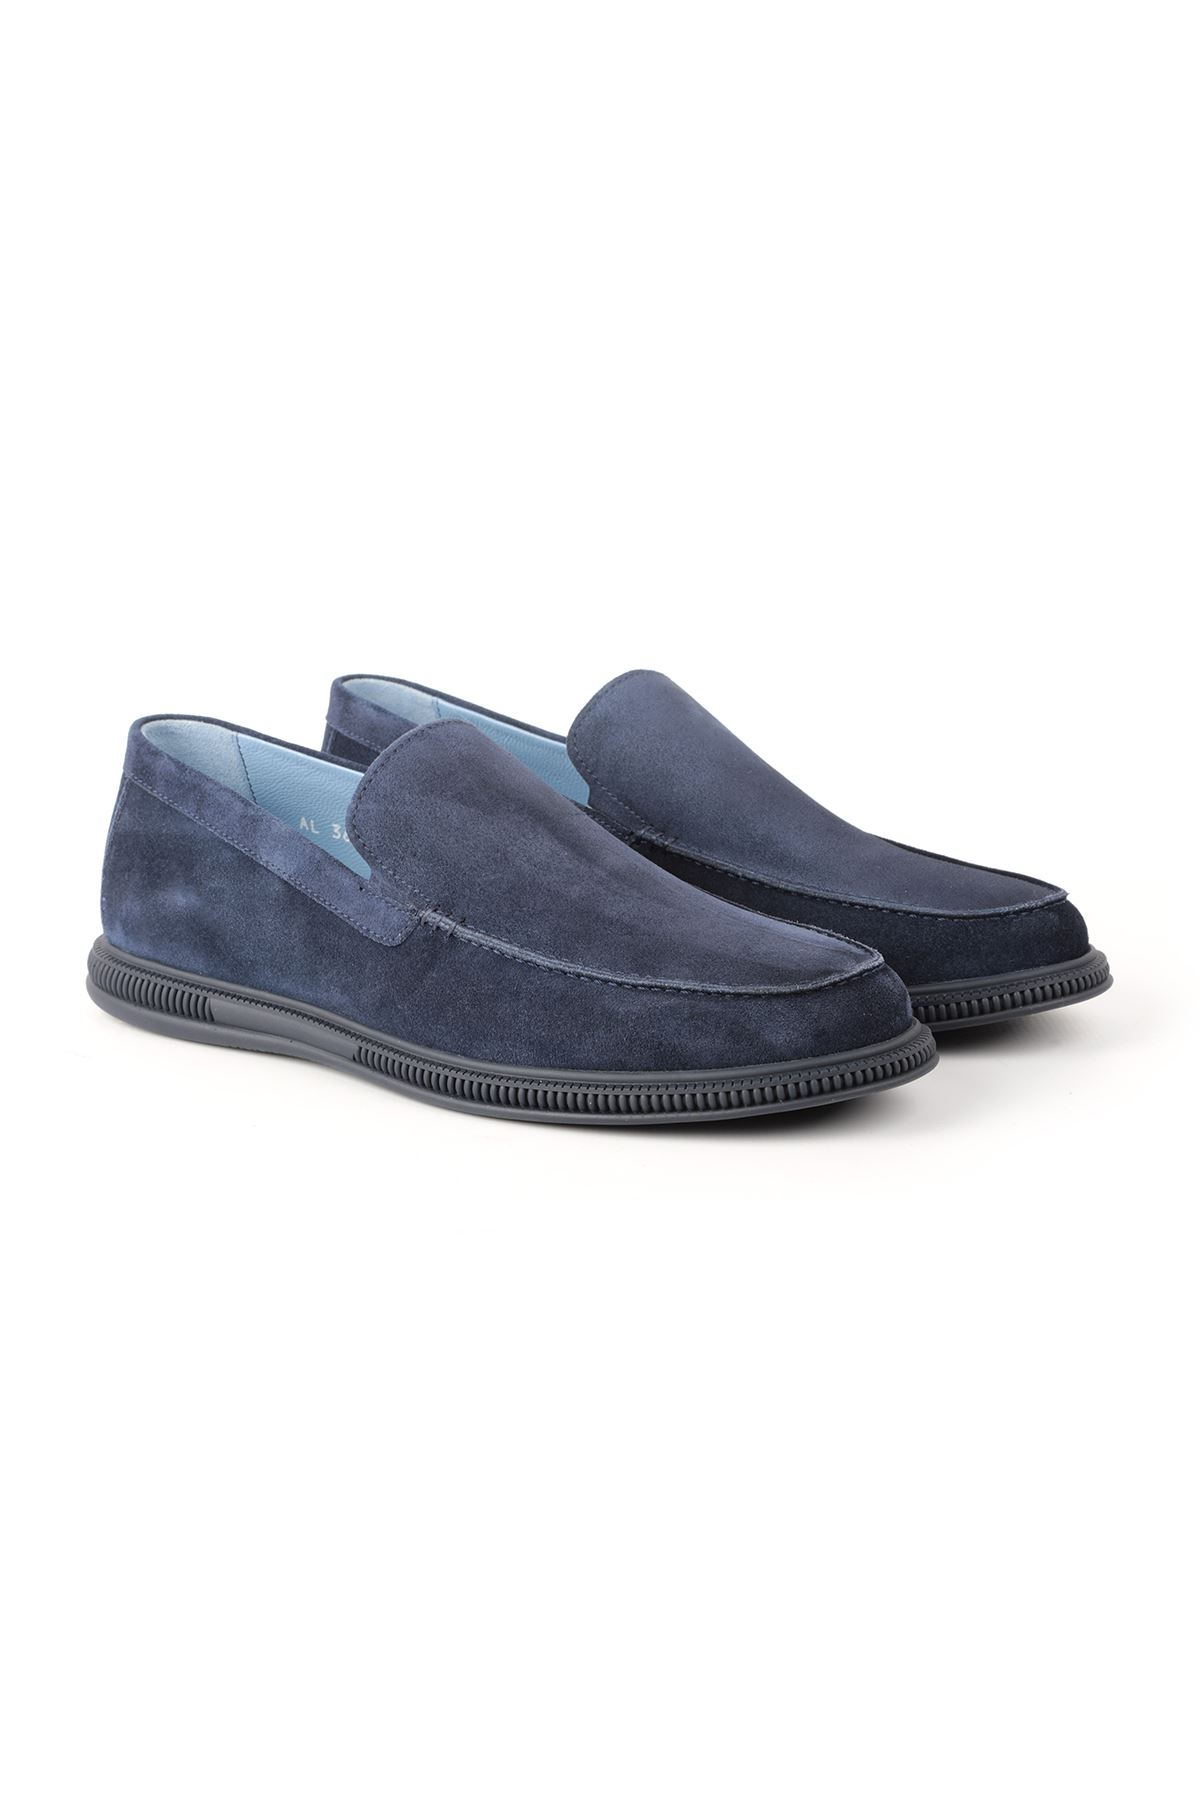 Libero L3635 Navy Blue Loafer Men's Shoes